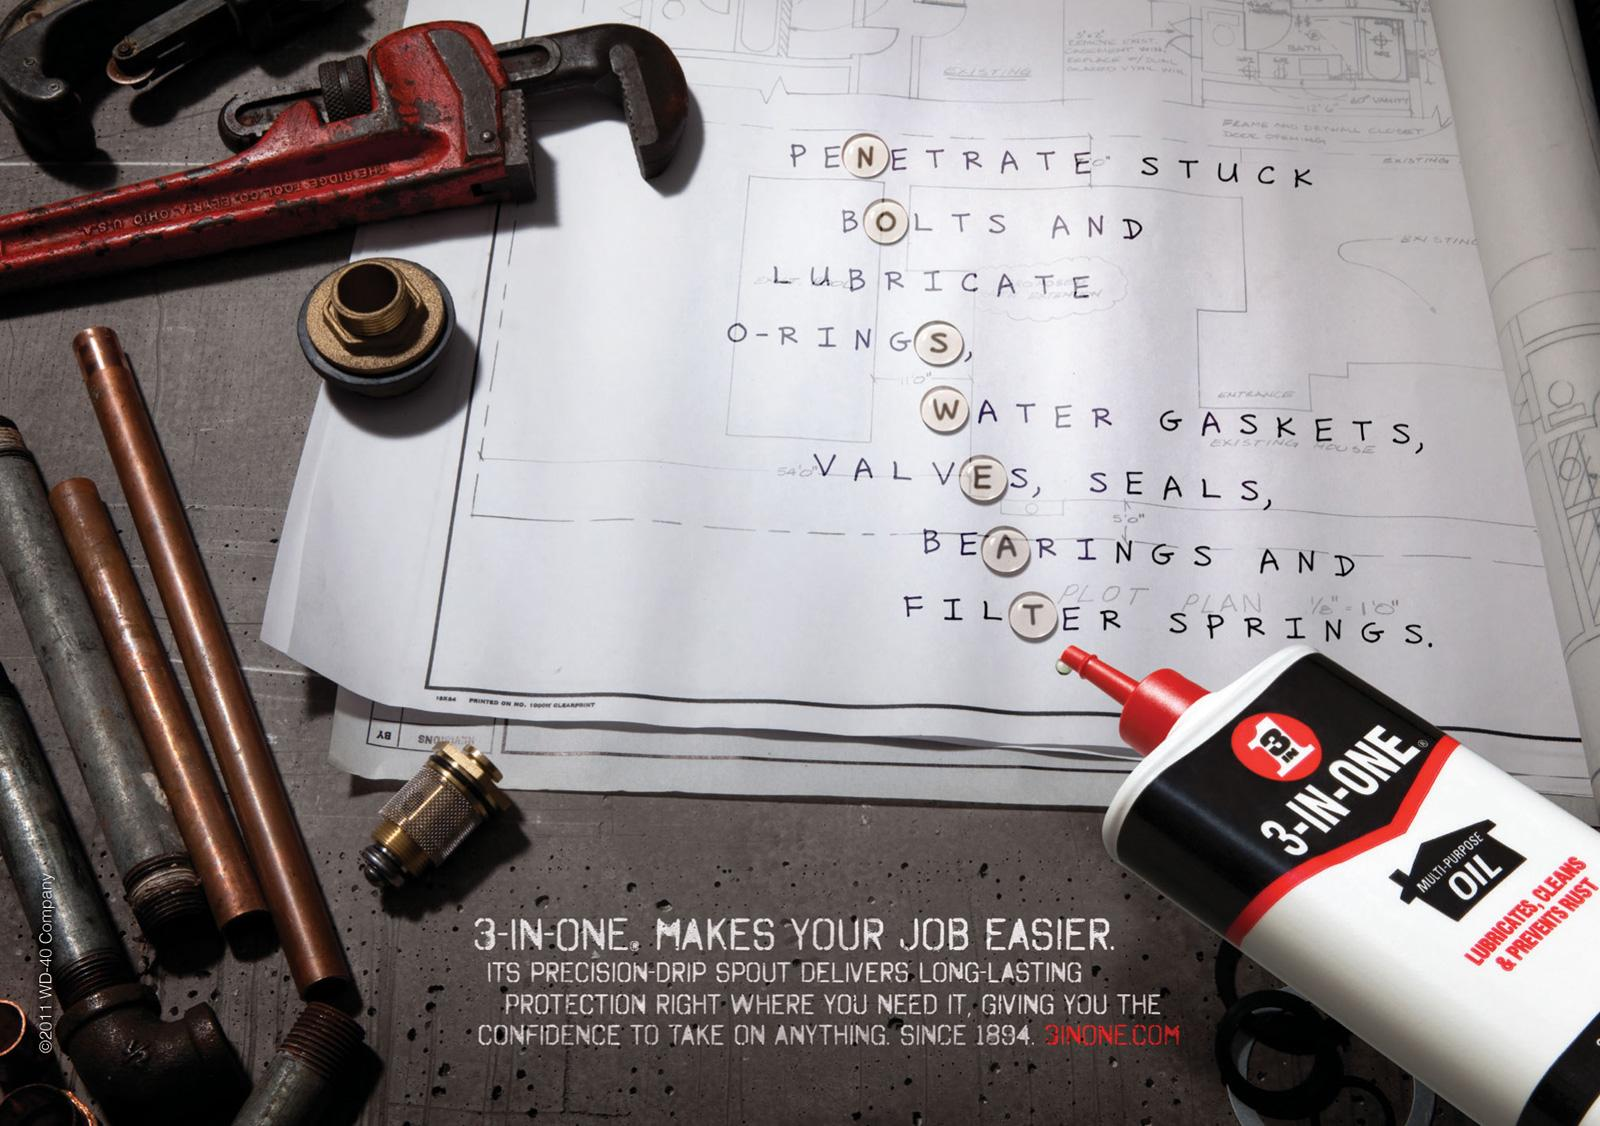 3-IN-ONE Oil Print Ad -  No Sweat